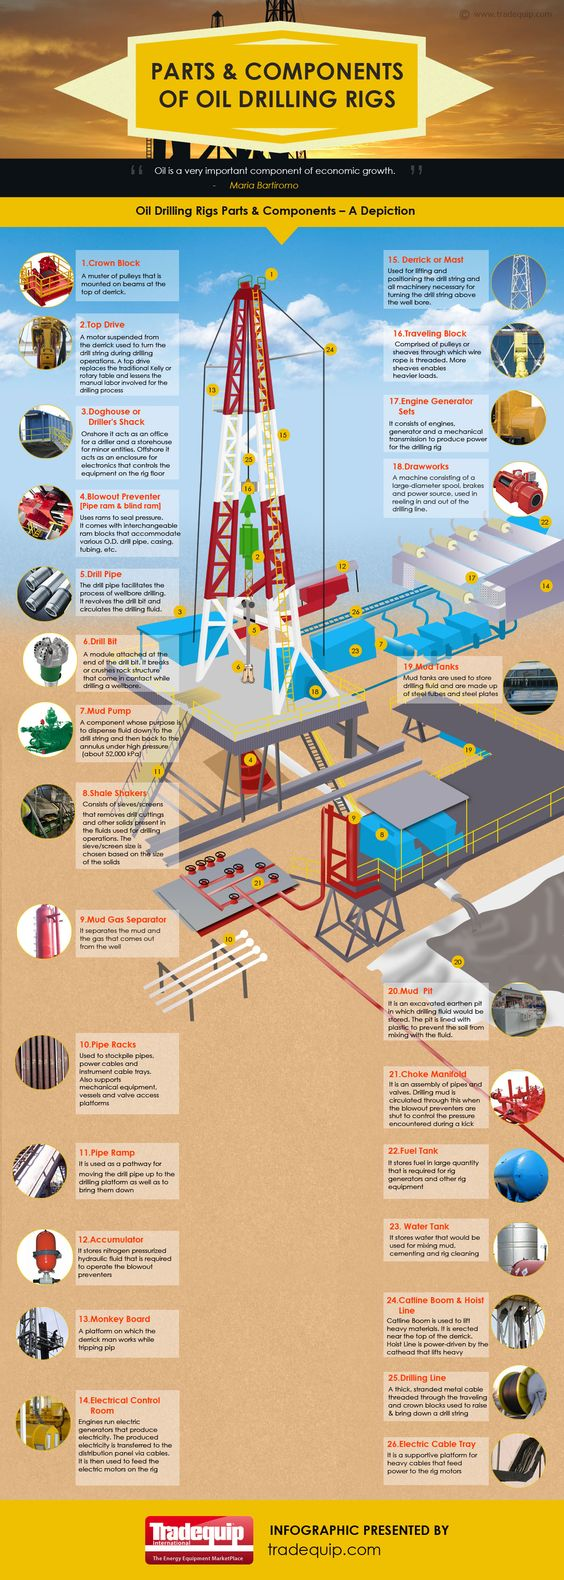 In case you ever wanted to know what goes into drilling....An Infographic on Parts and Components of Oil Drilling Rigs - Tradequip - The Energy Equipment Marketplace - provides a way to connect buyers and sellers of energy industry equipment in a safe and secure manner. Find infographic at http://www.tradequip.com/infographic/parts-and-components-of-oil-drilling-rigs